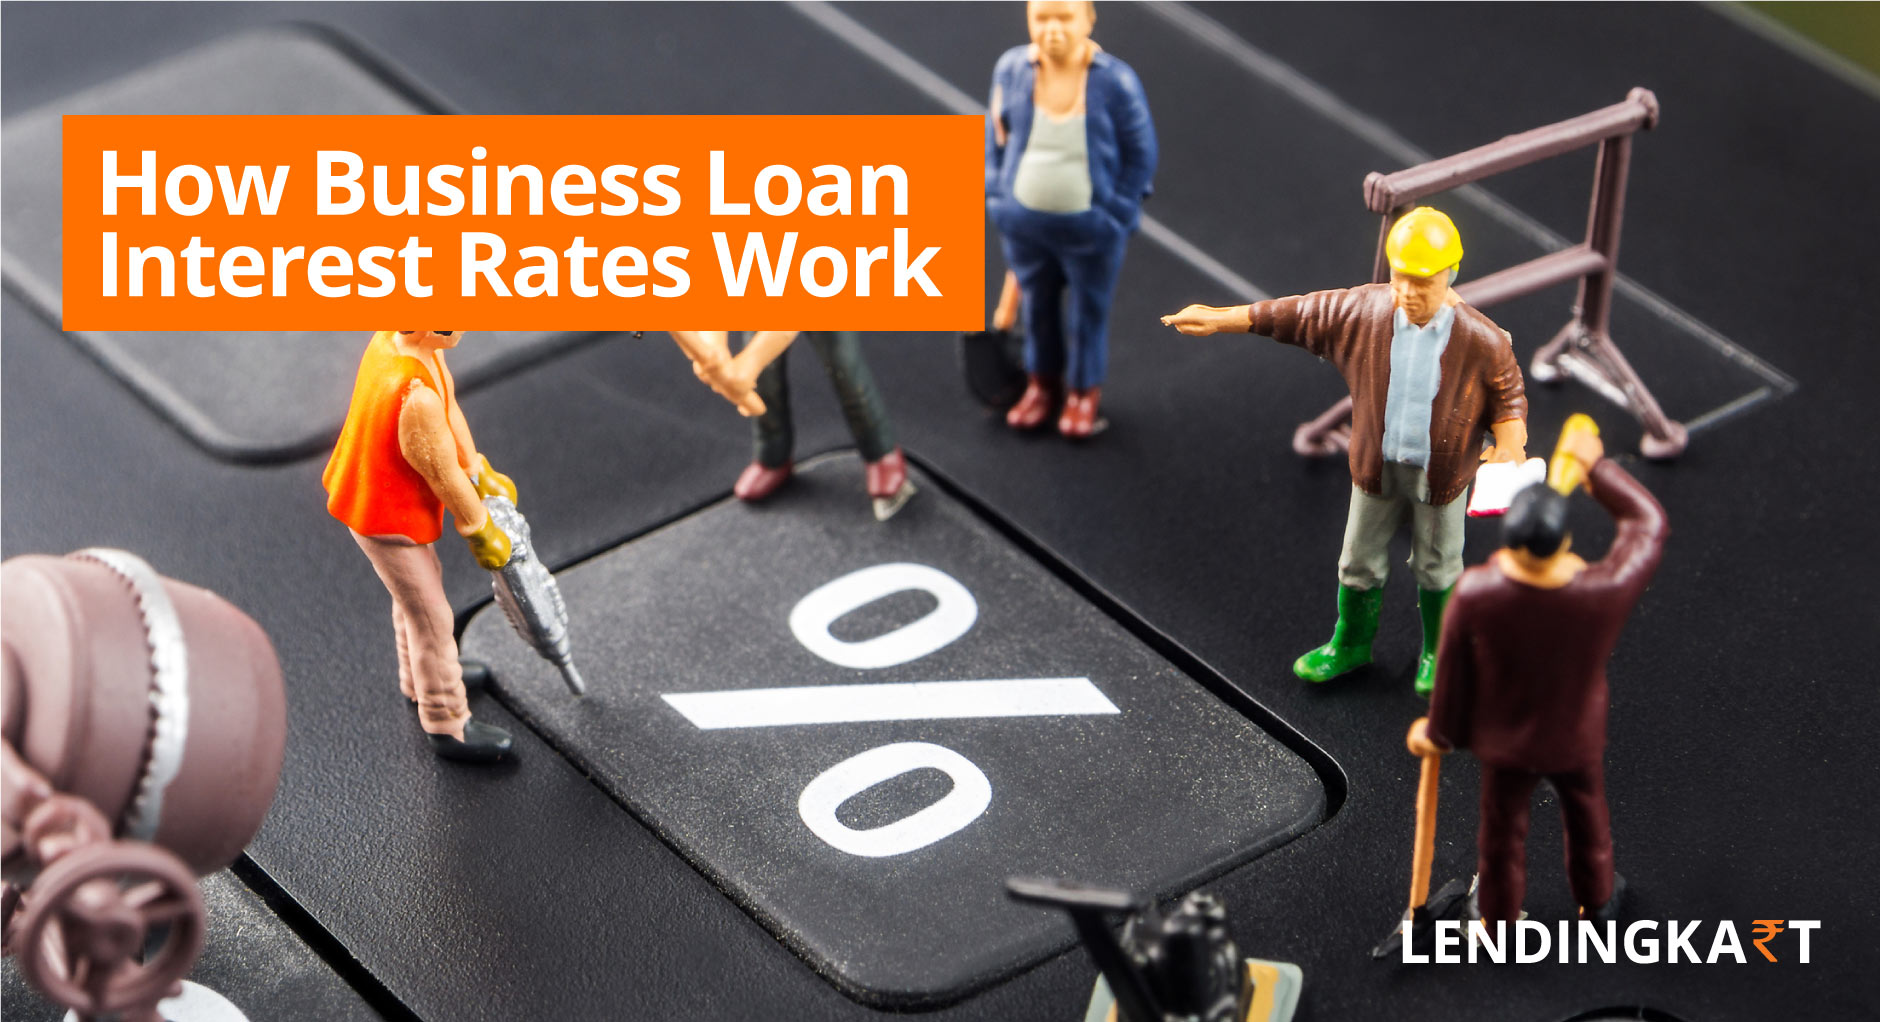 How Business Loan Interest Rates Work